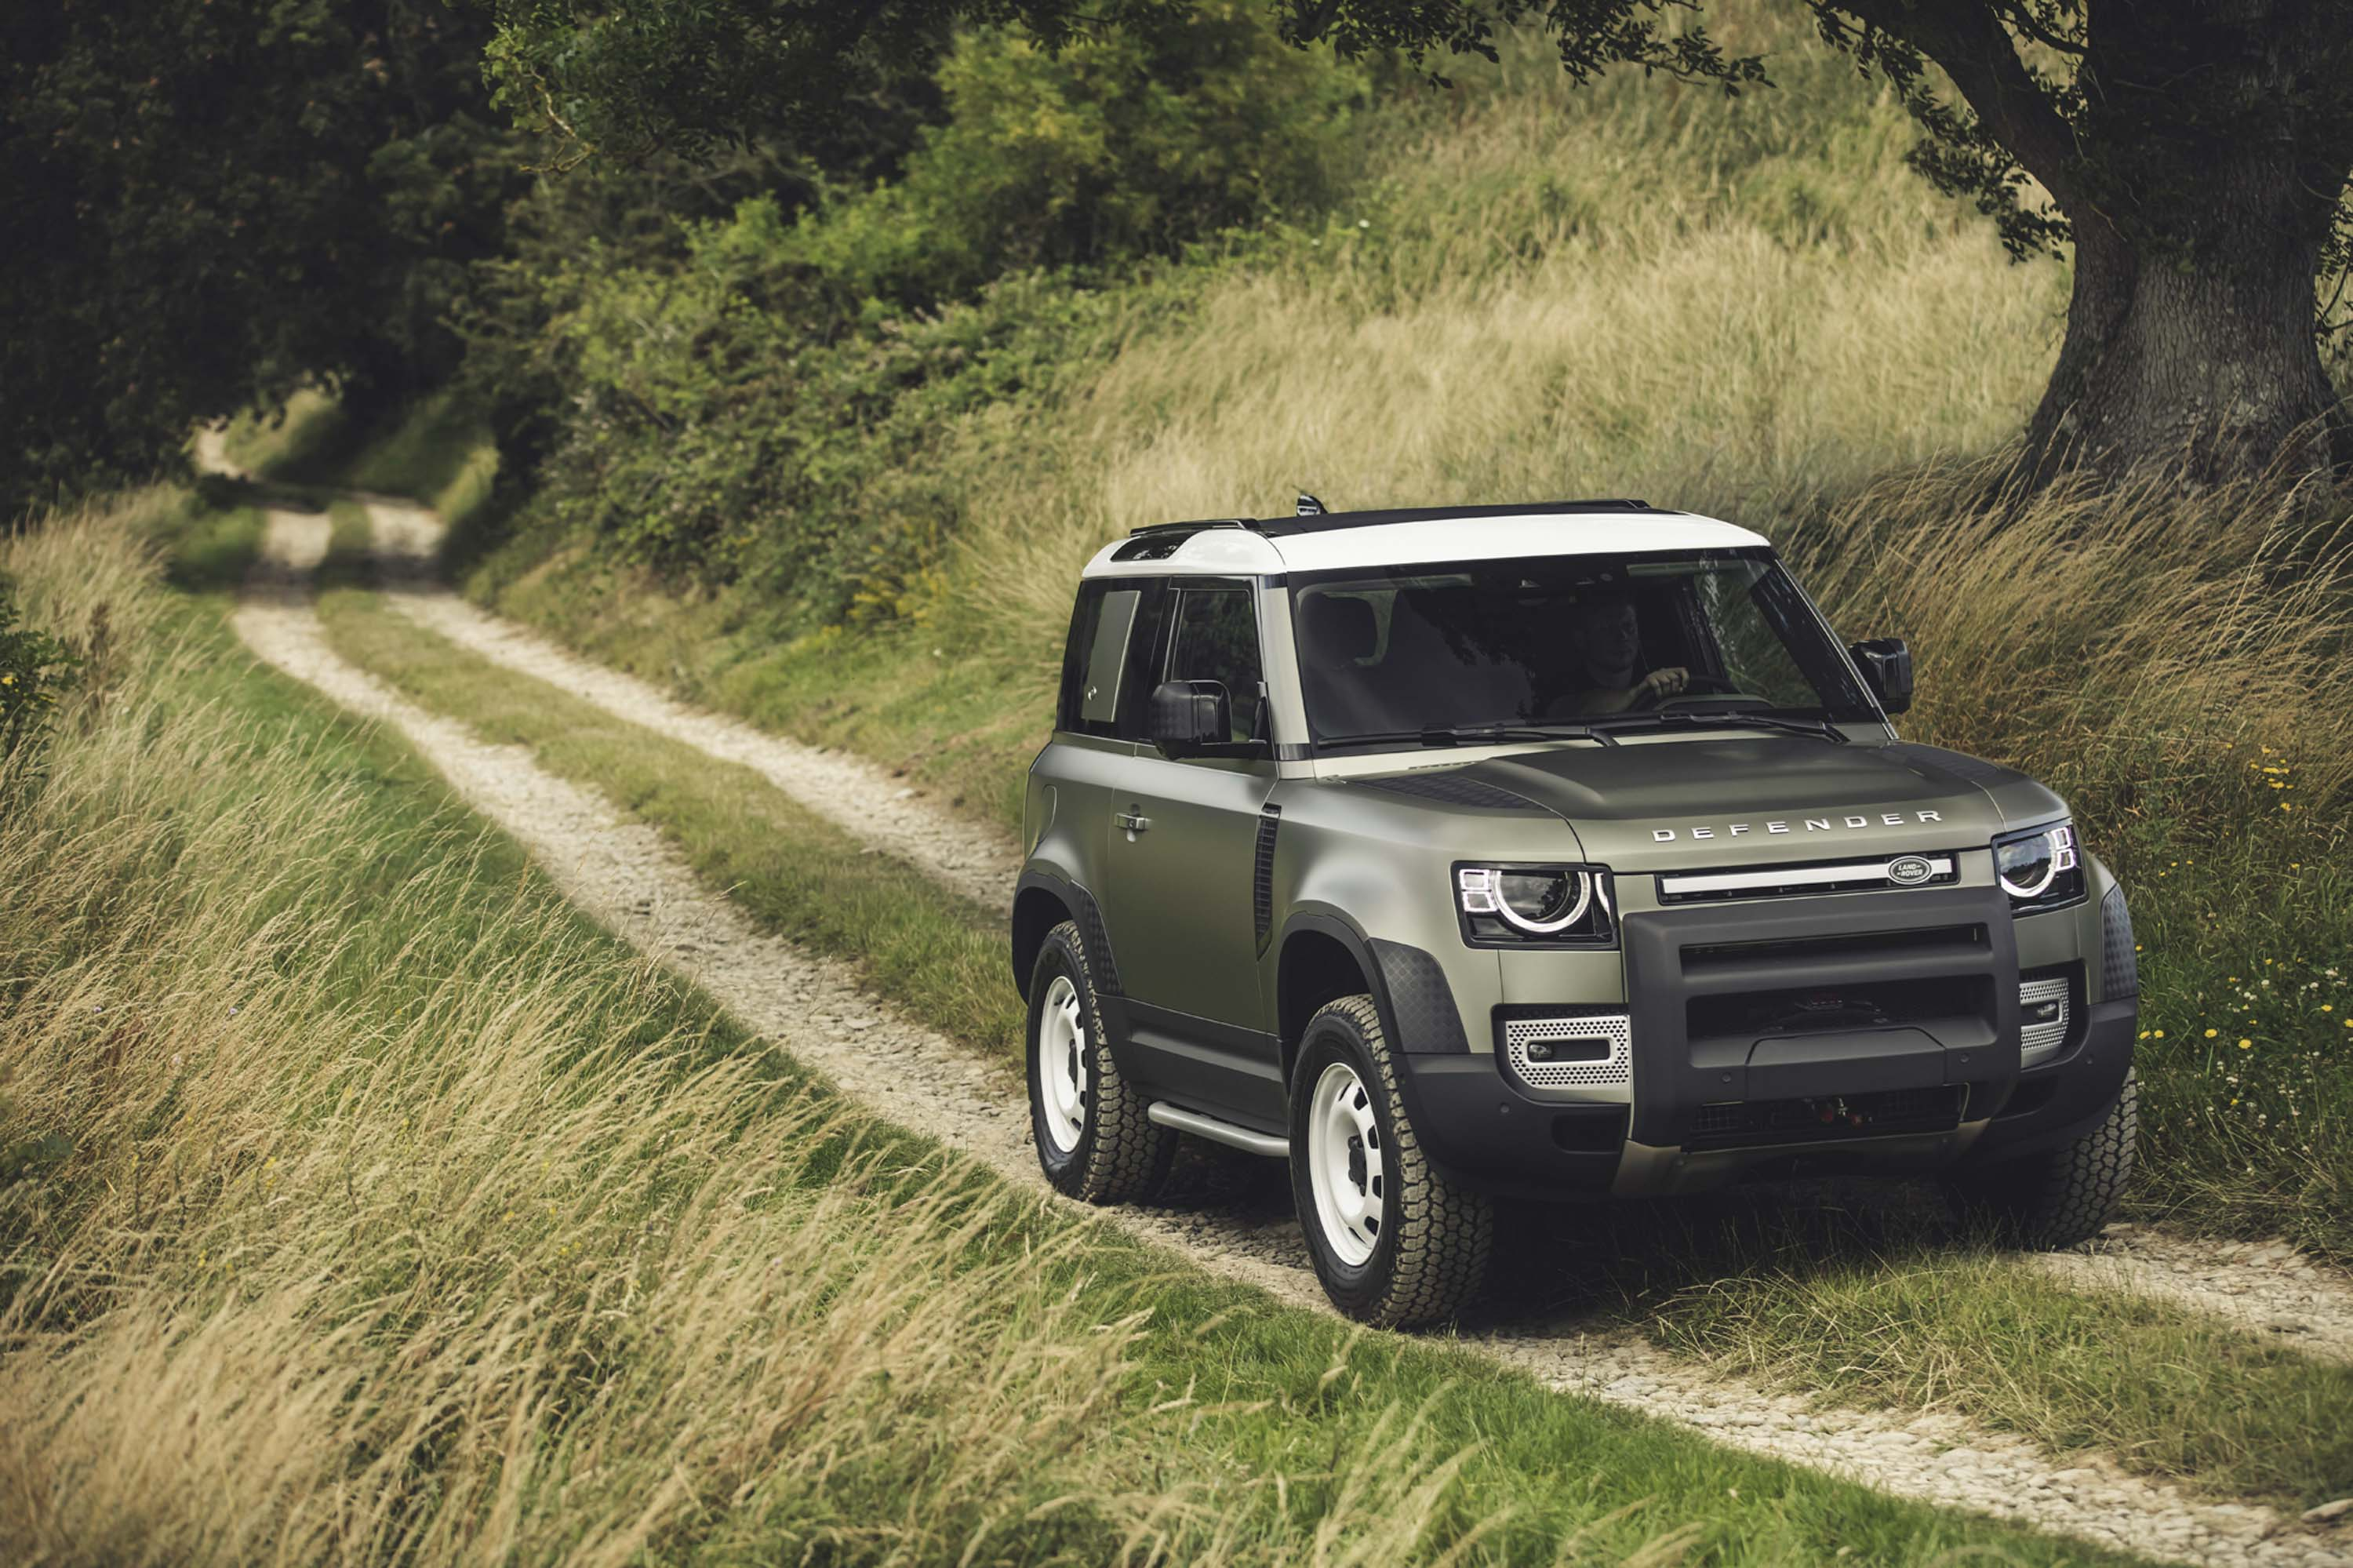 2020 Land Rover Defender Quirks And Features Top Speed